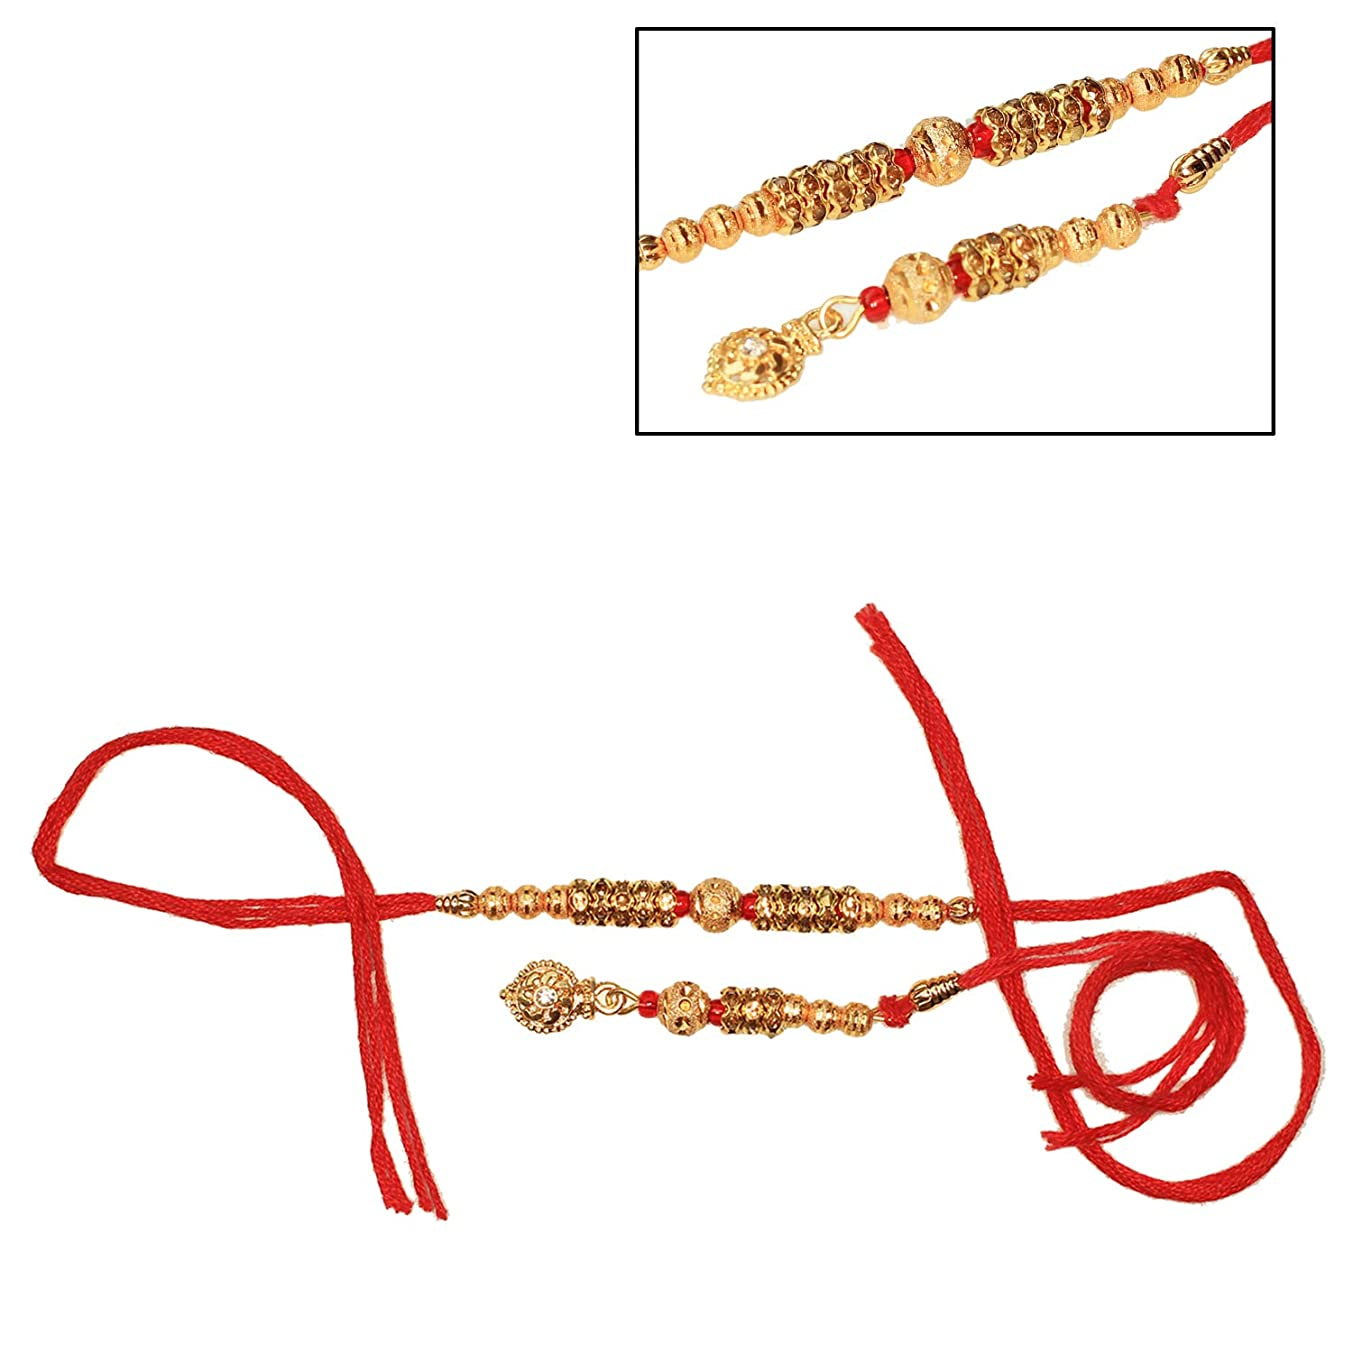 India Store US Designer Lumba & Rakhi with Metal Beads & Stone - Best Handmade Red Thread Rakhi for Loving Brother/Sibling/Bhai - Happy Rakshabandhan Raksha Bandhan from India